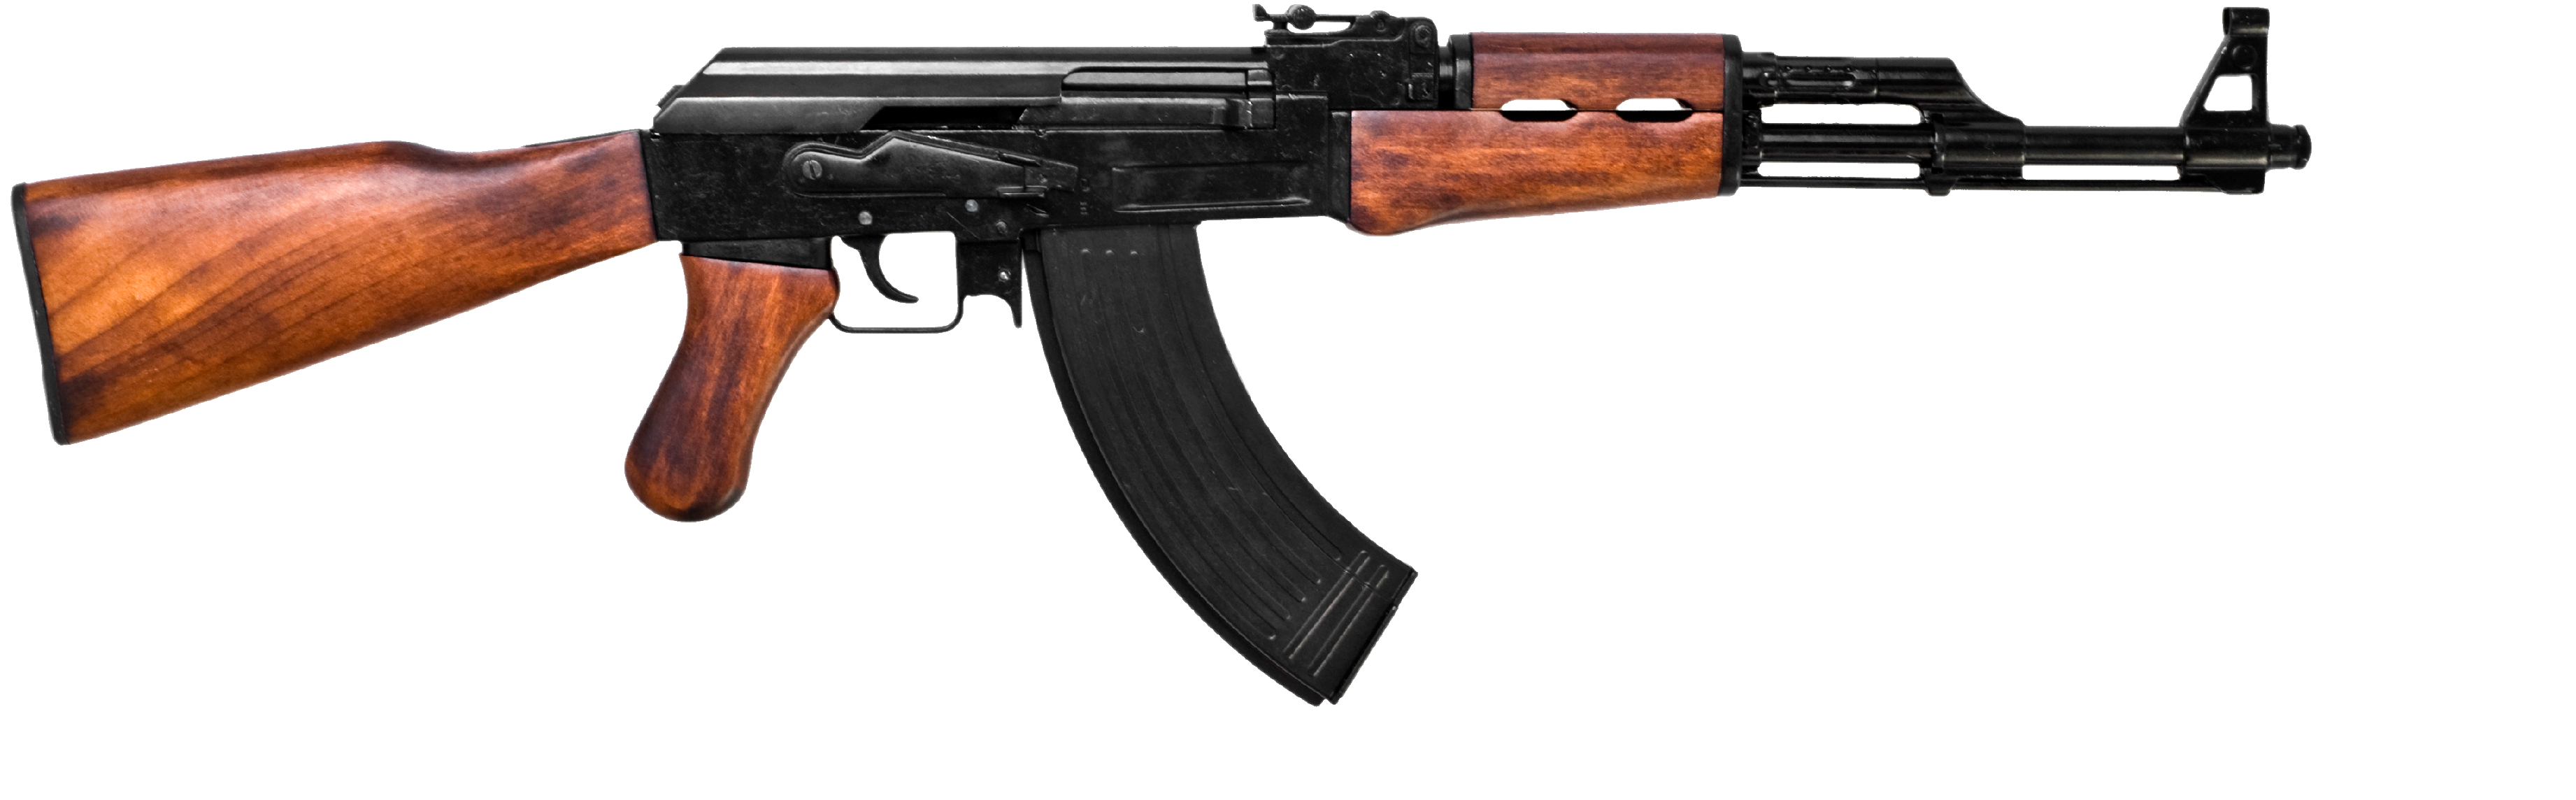 Transparent rifle. Ak png images free